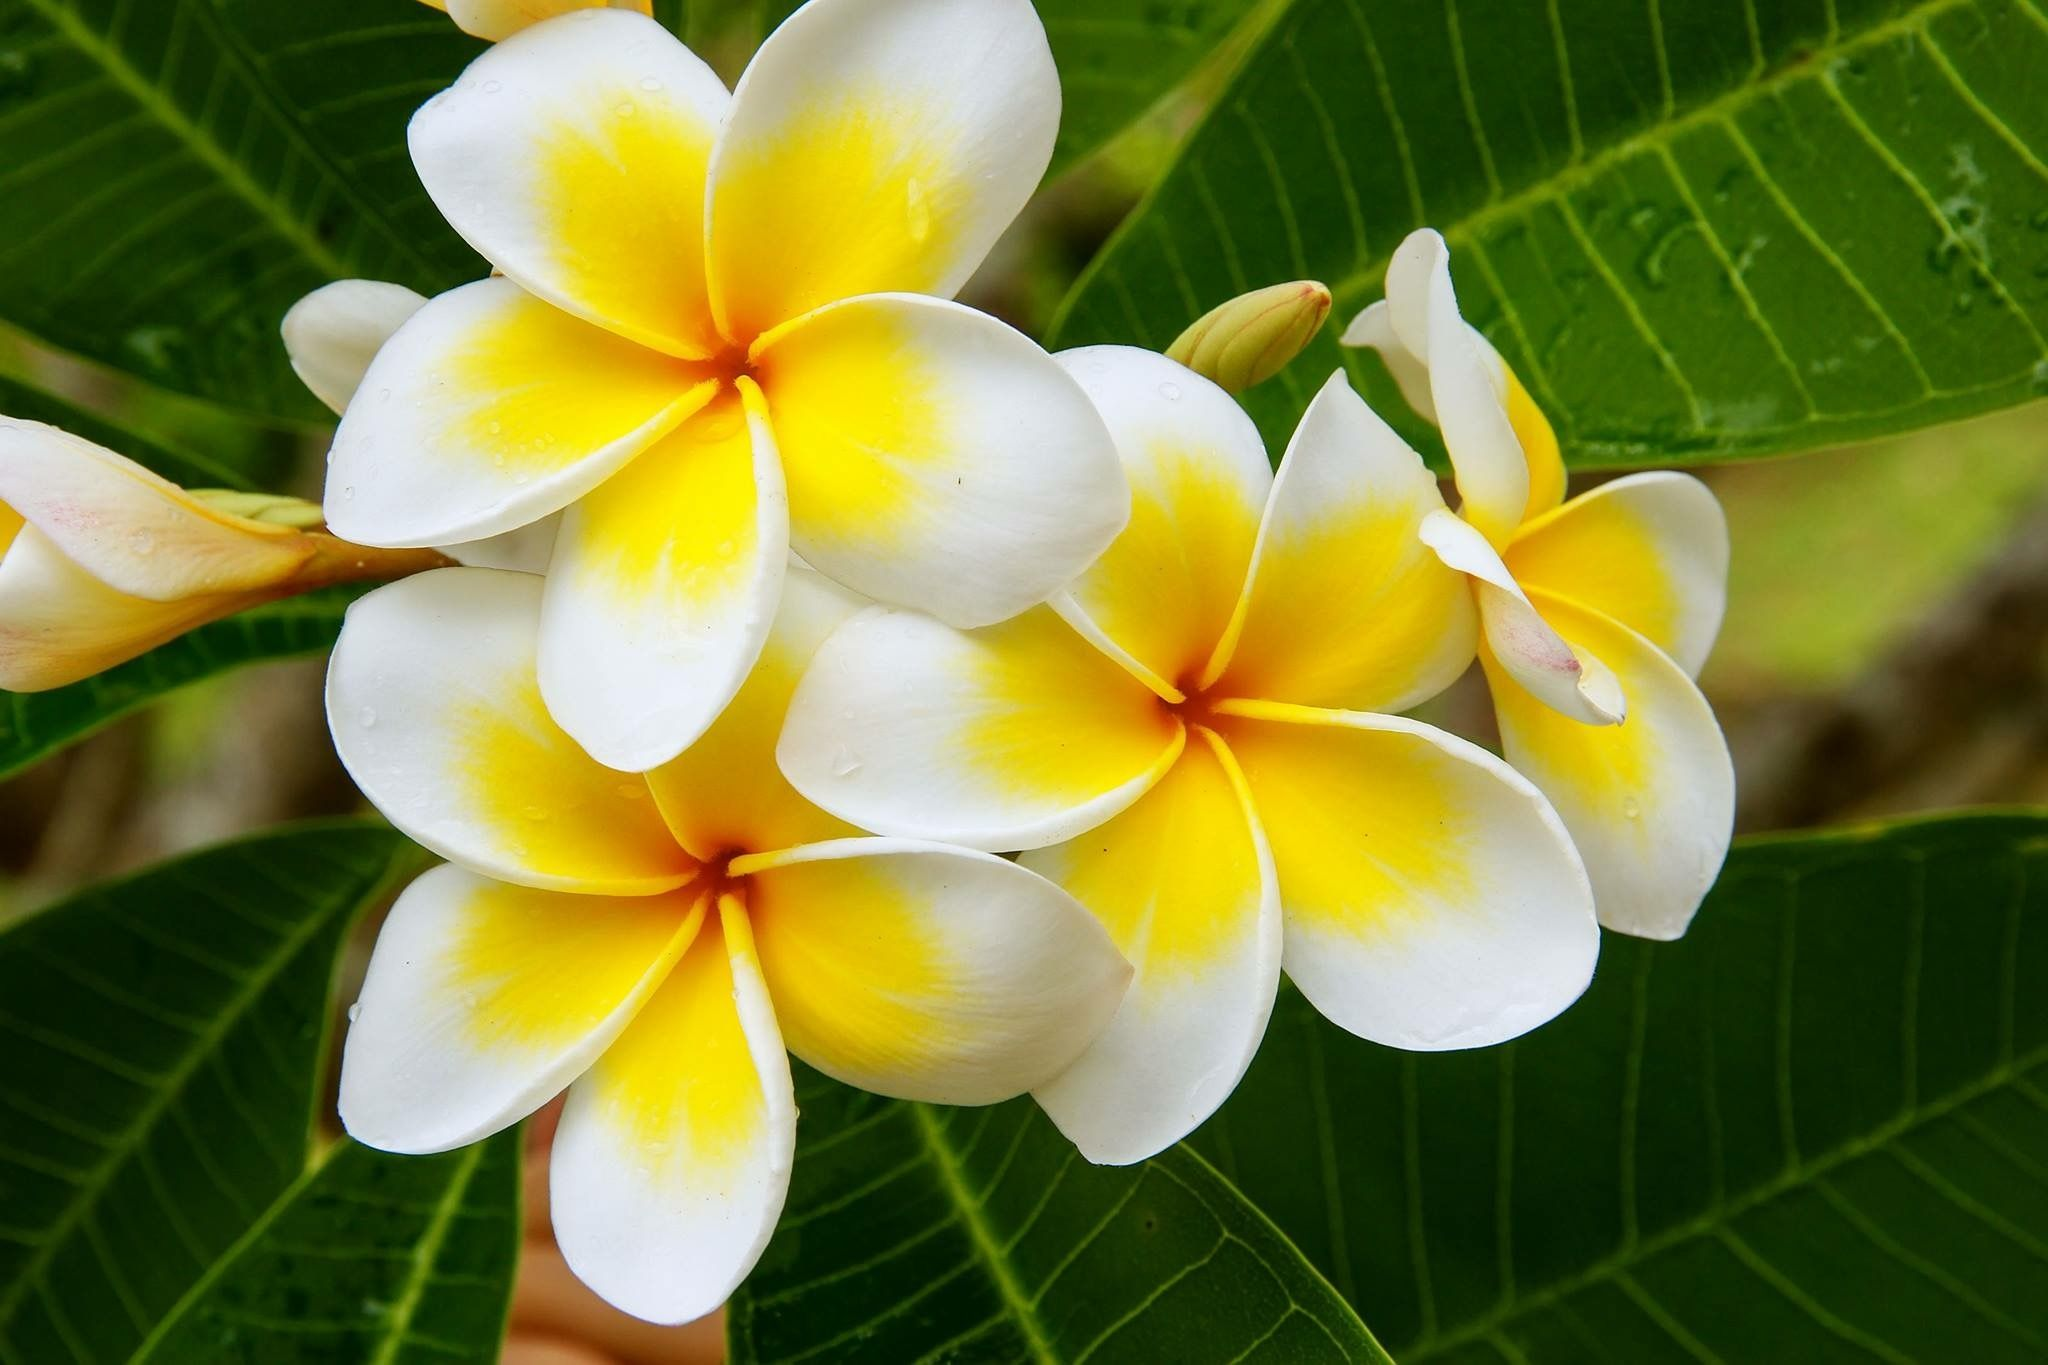 Pin By Sara Ragan On Jamaica Tropical Flower Plants Plumeria Perennial Herbs